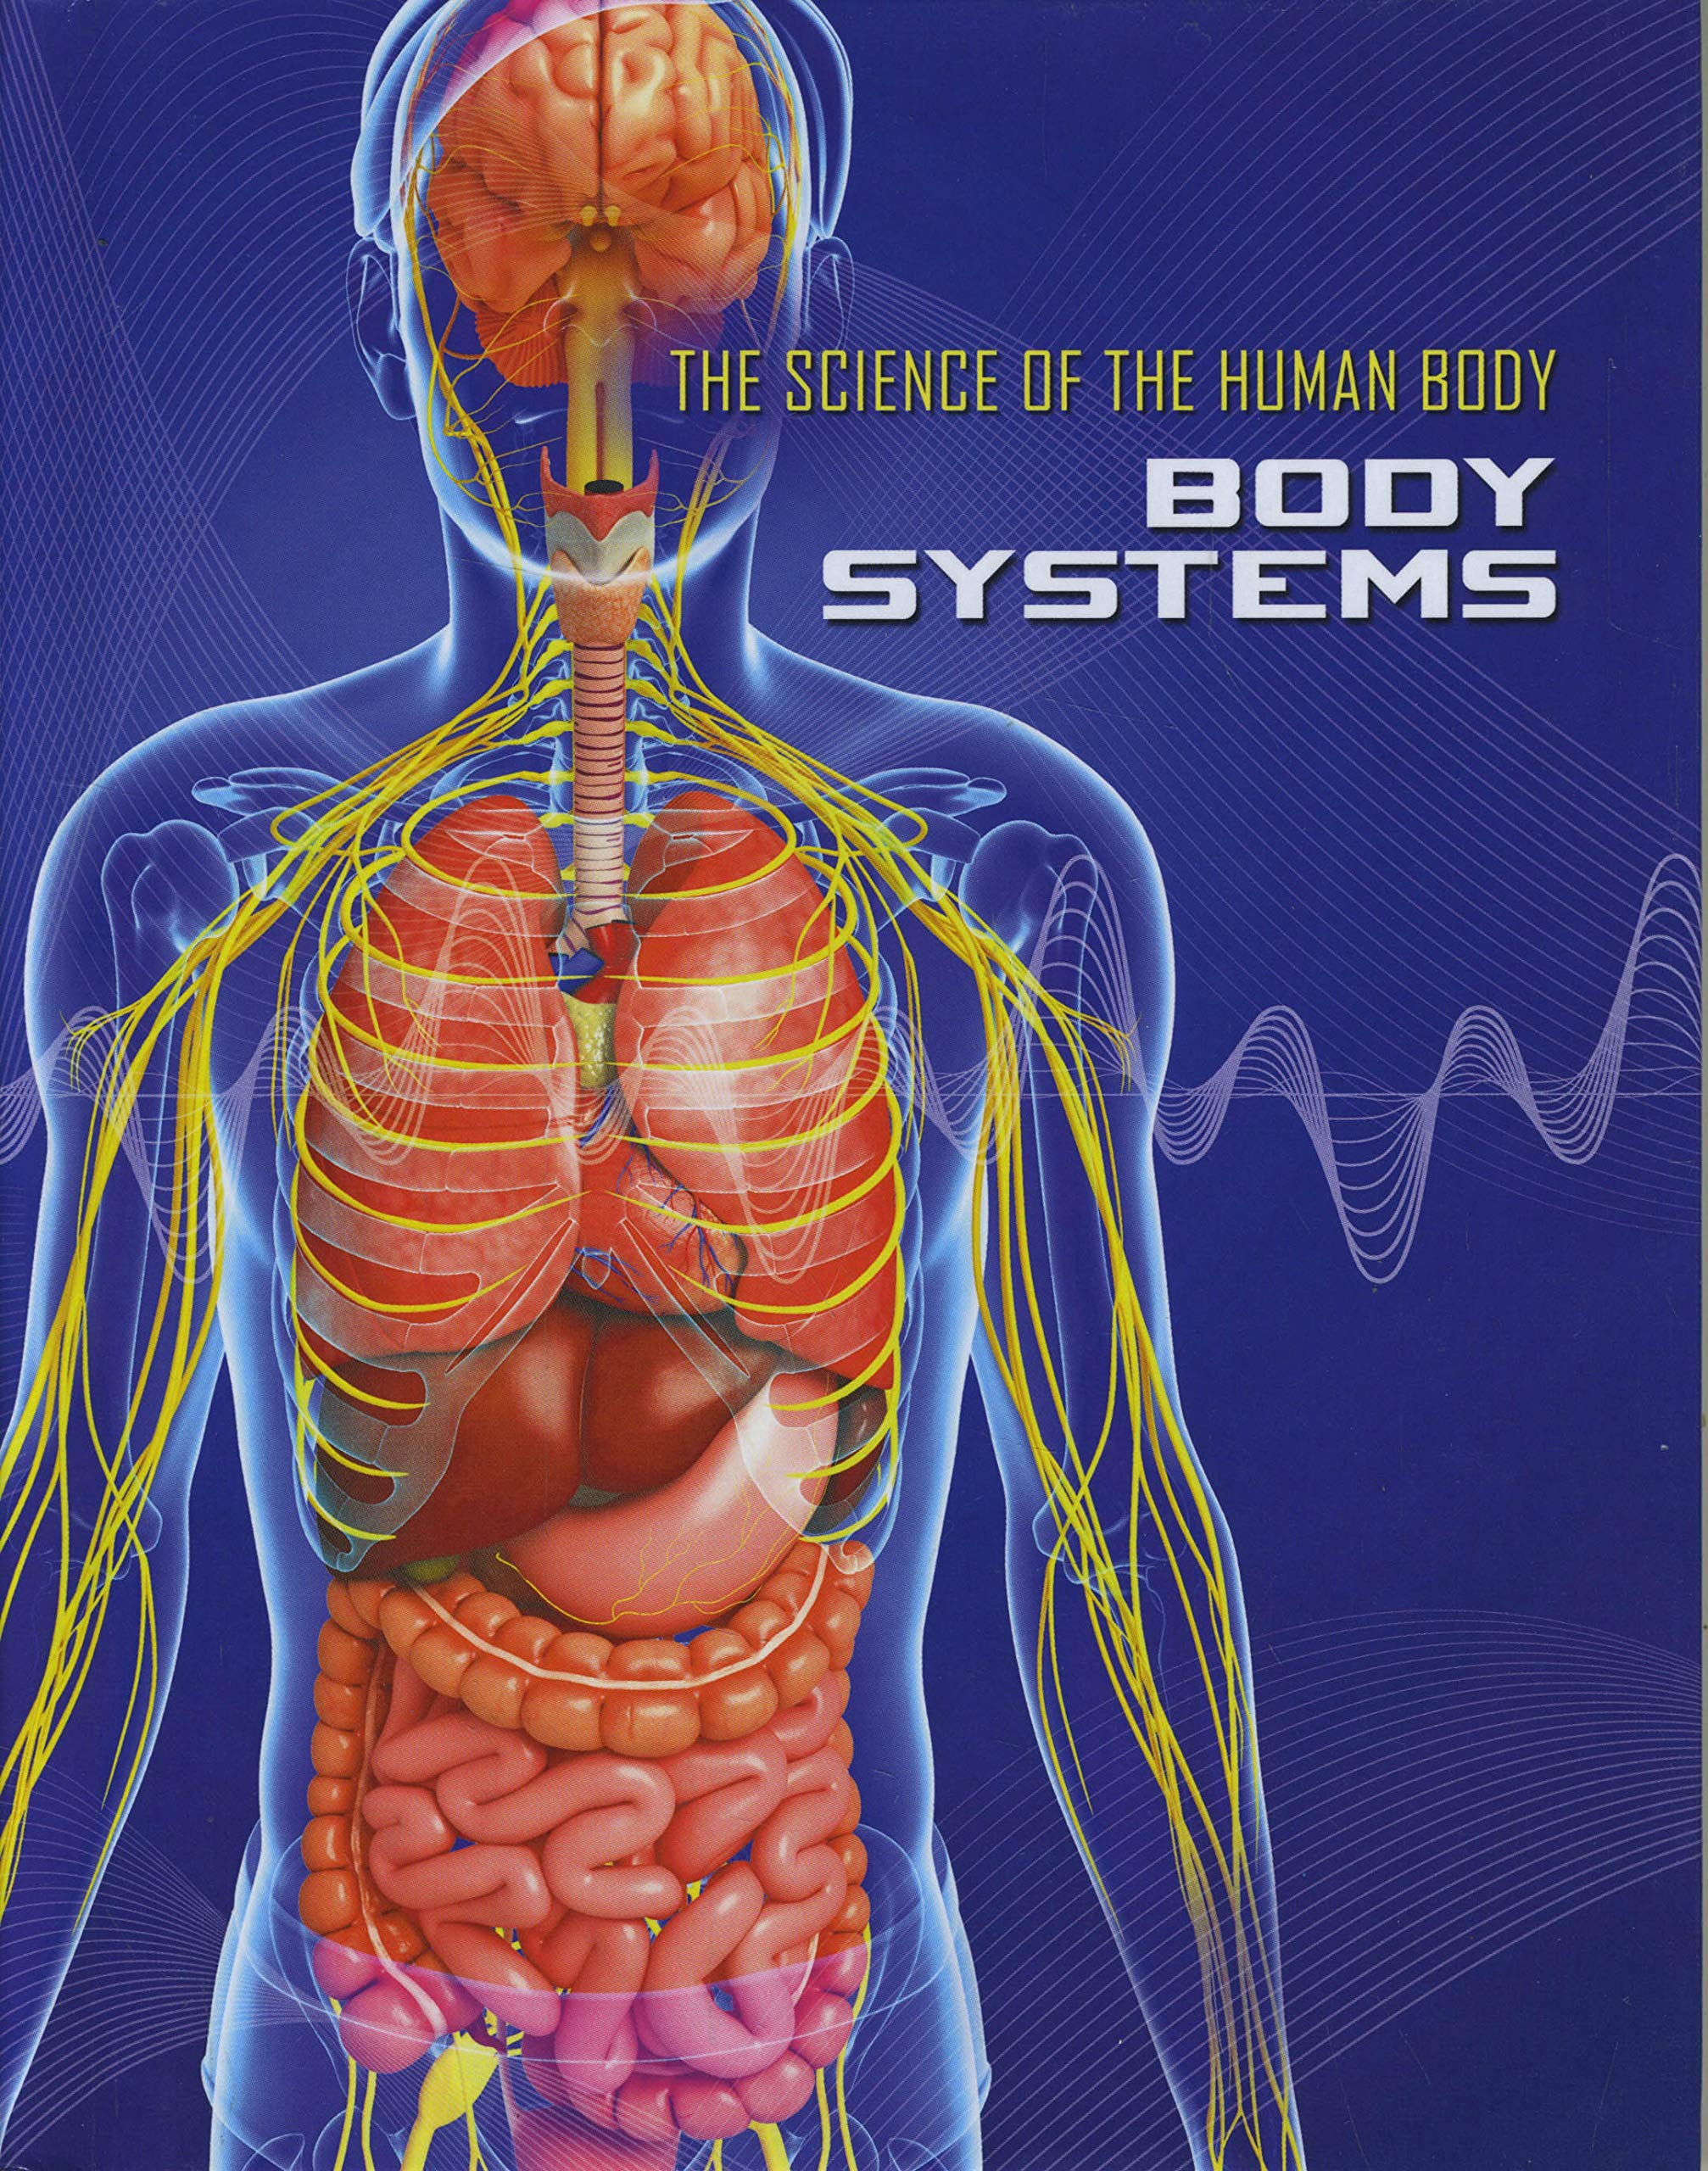 Body systems the science of the human body hardcover august 15 2018